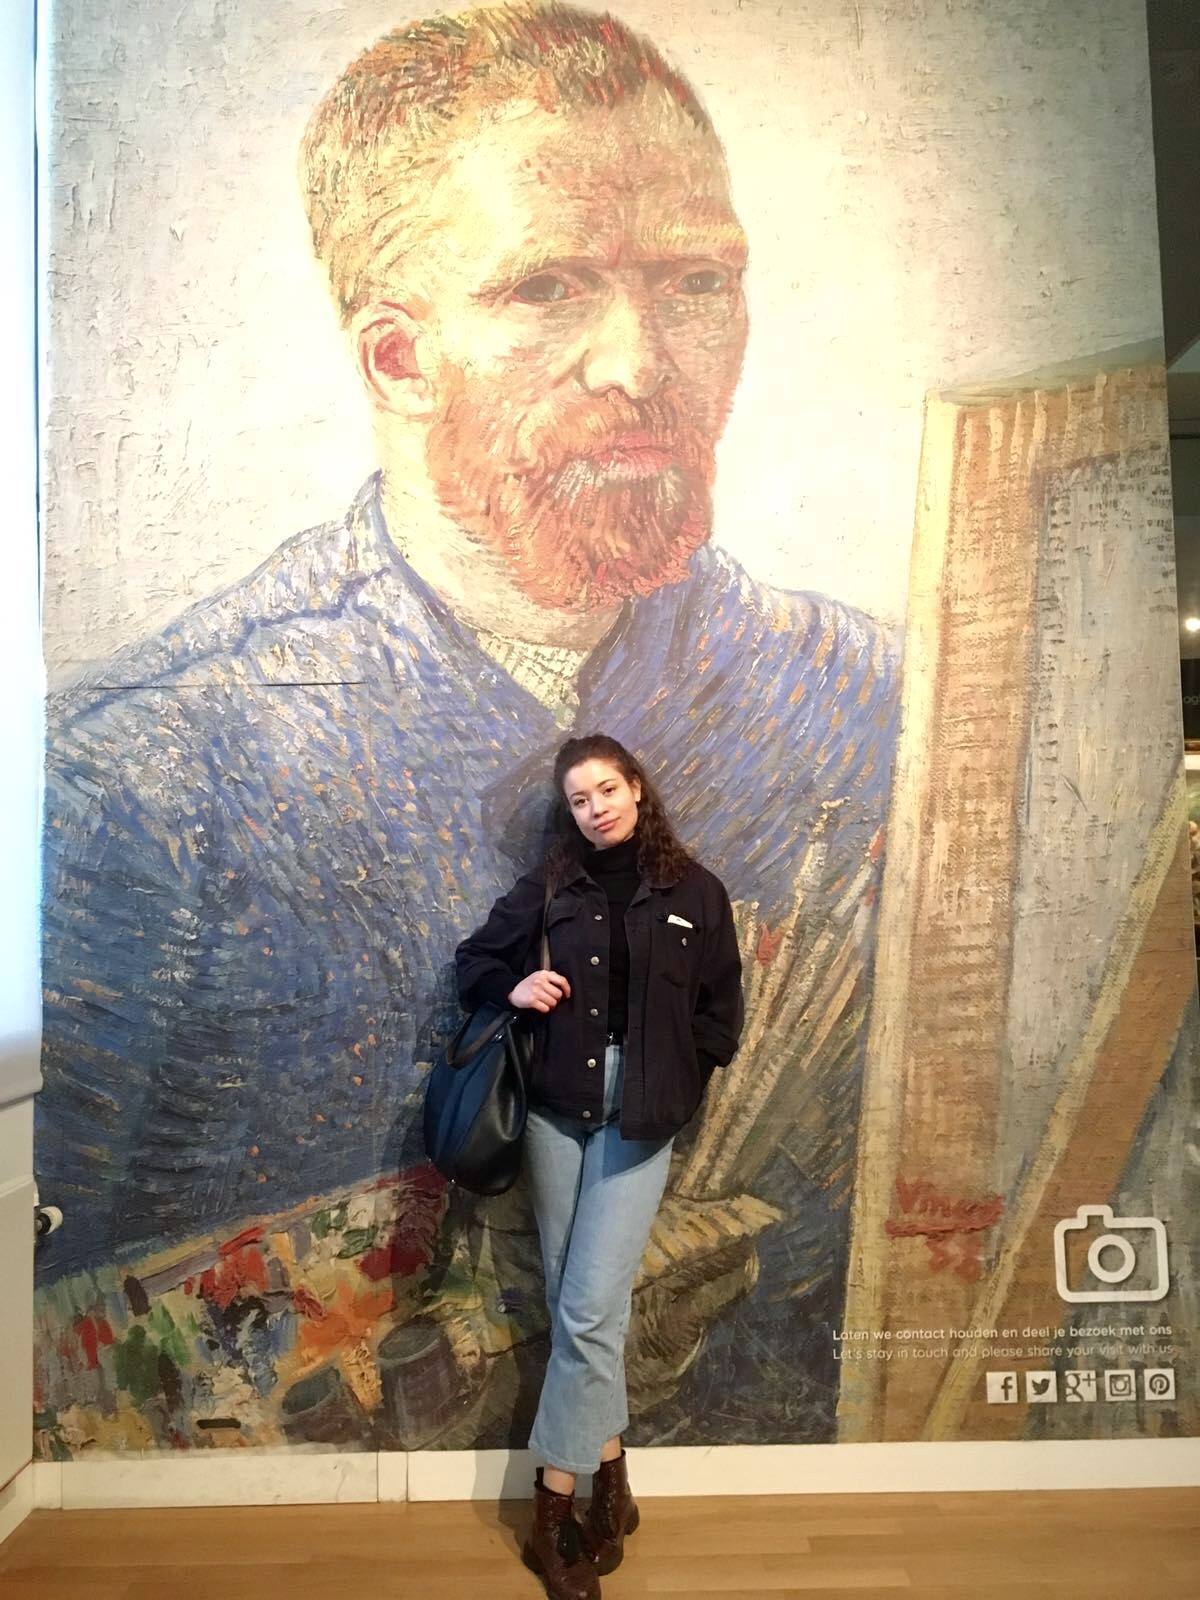 Eboni posing in front of a huge Van Gough portrait in the Van Gough museum, Amsterdam.